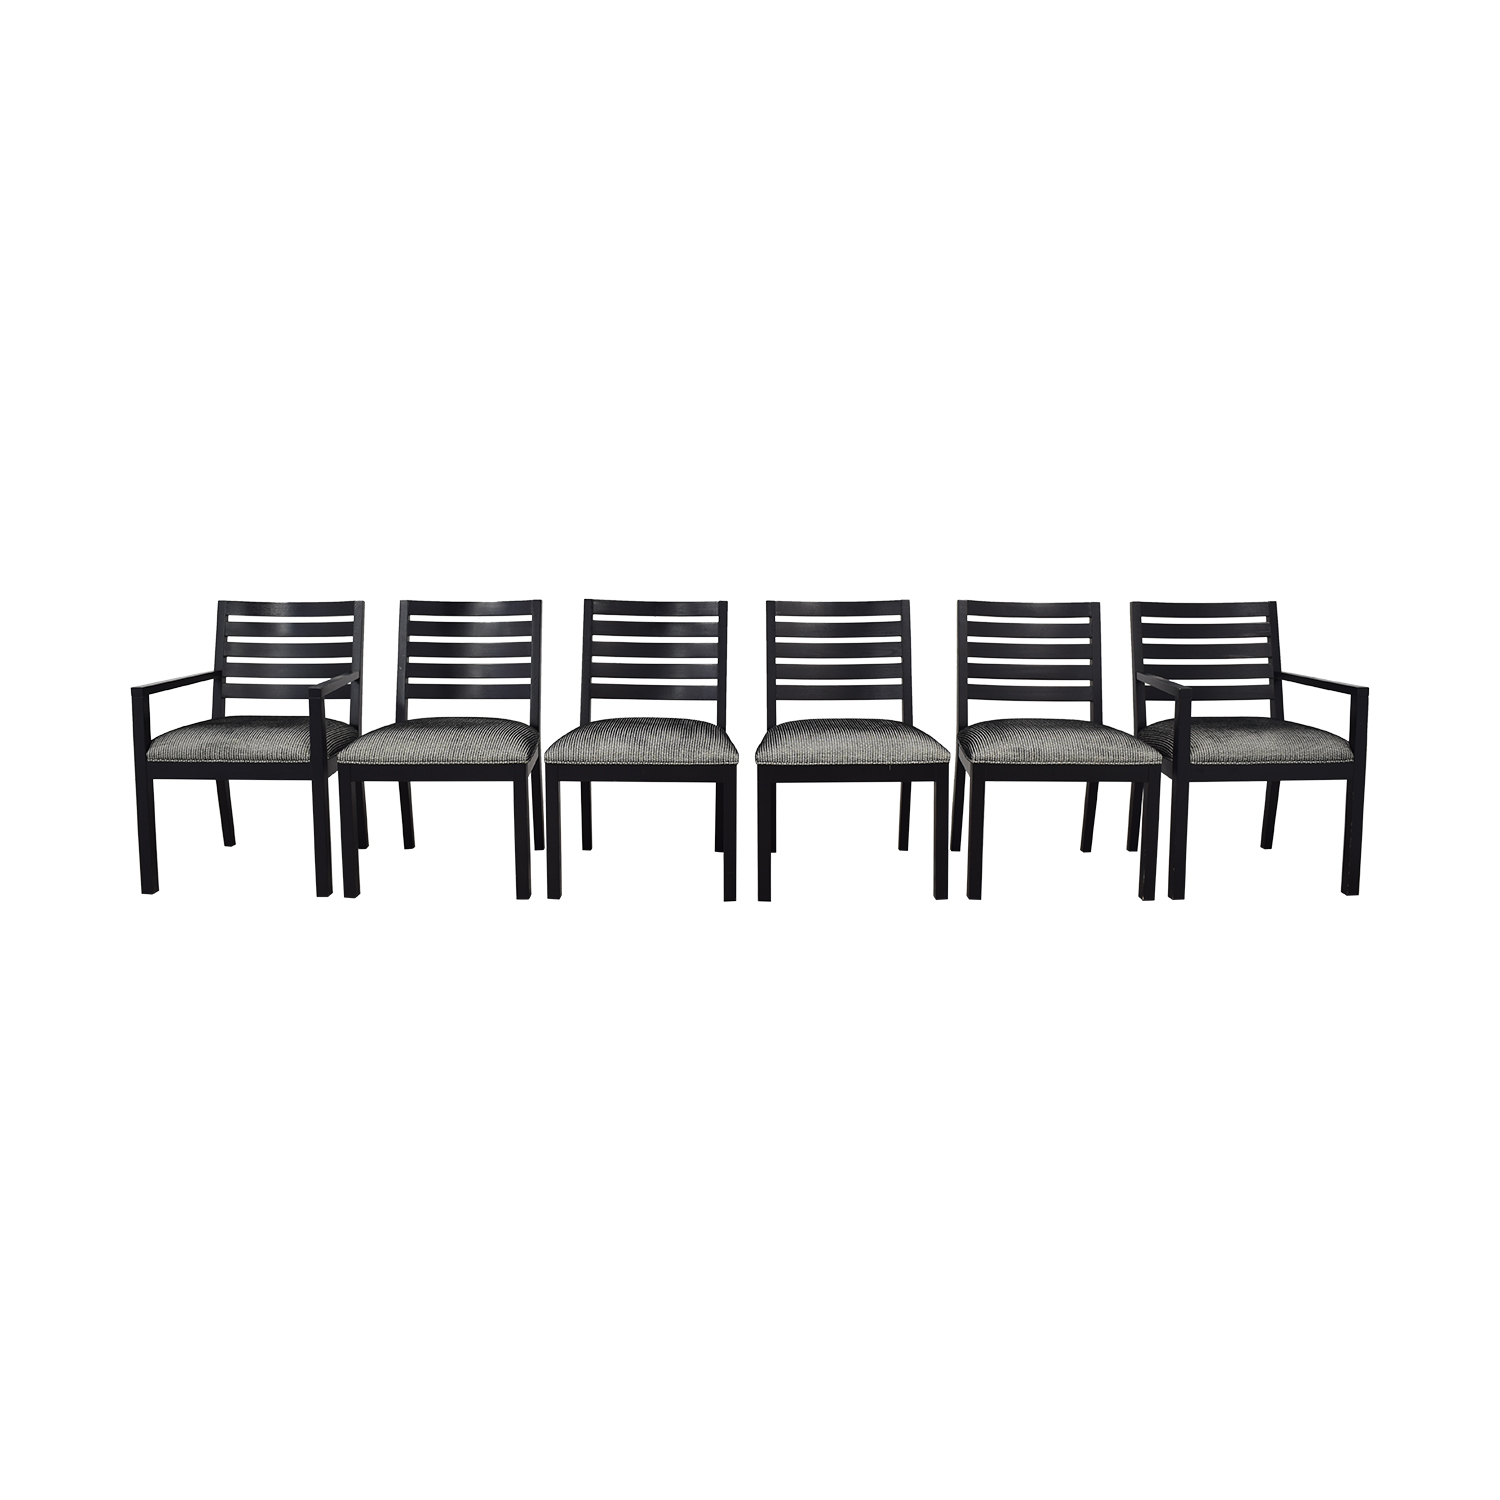 buy Ethan Allen Horizontal Slat Dining Chairs Ethan Allen Dining Chairs